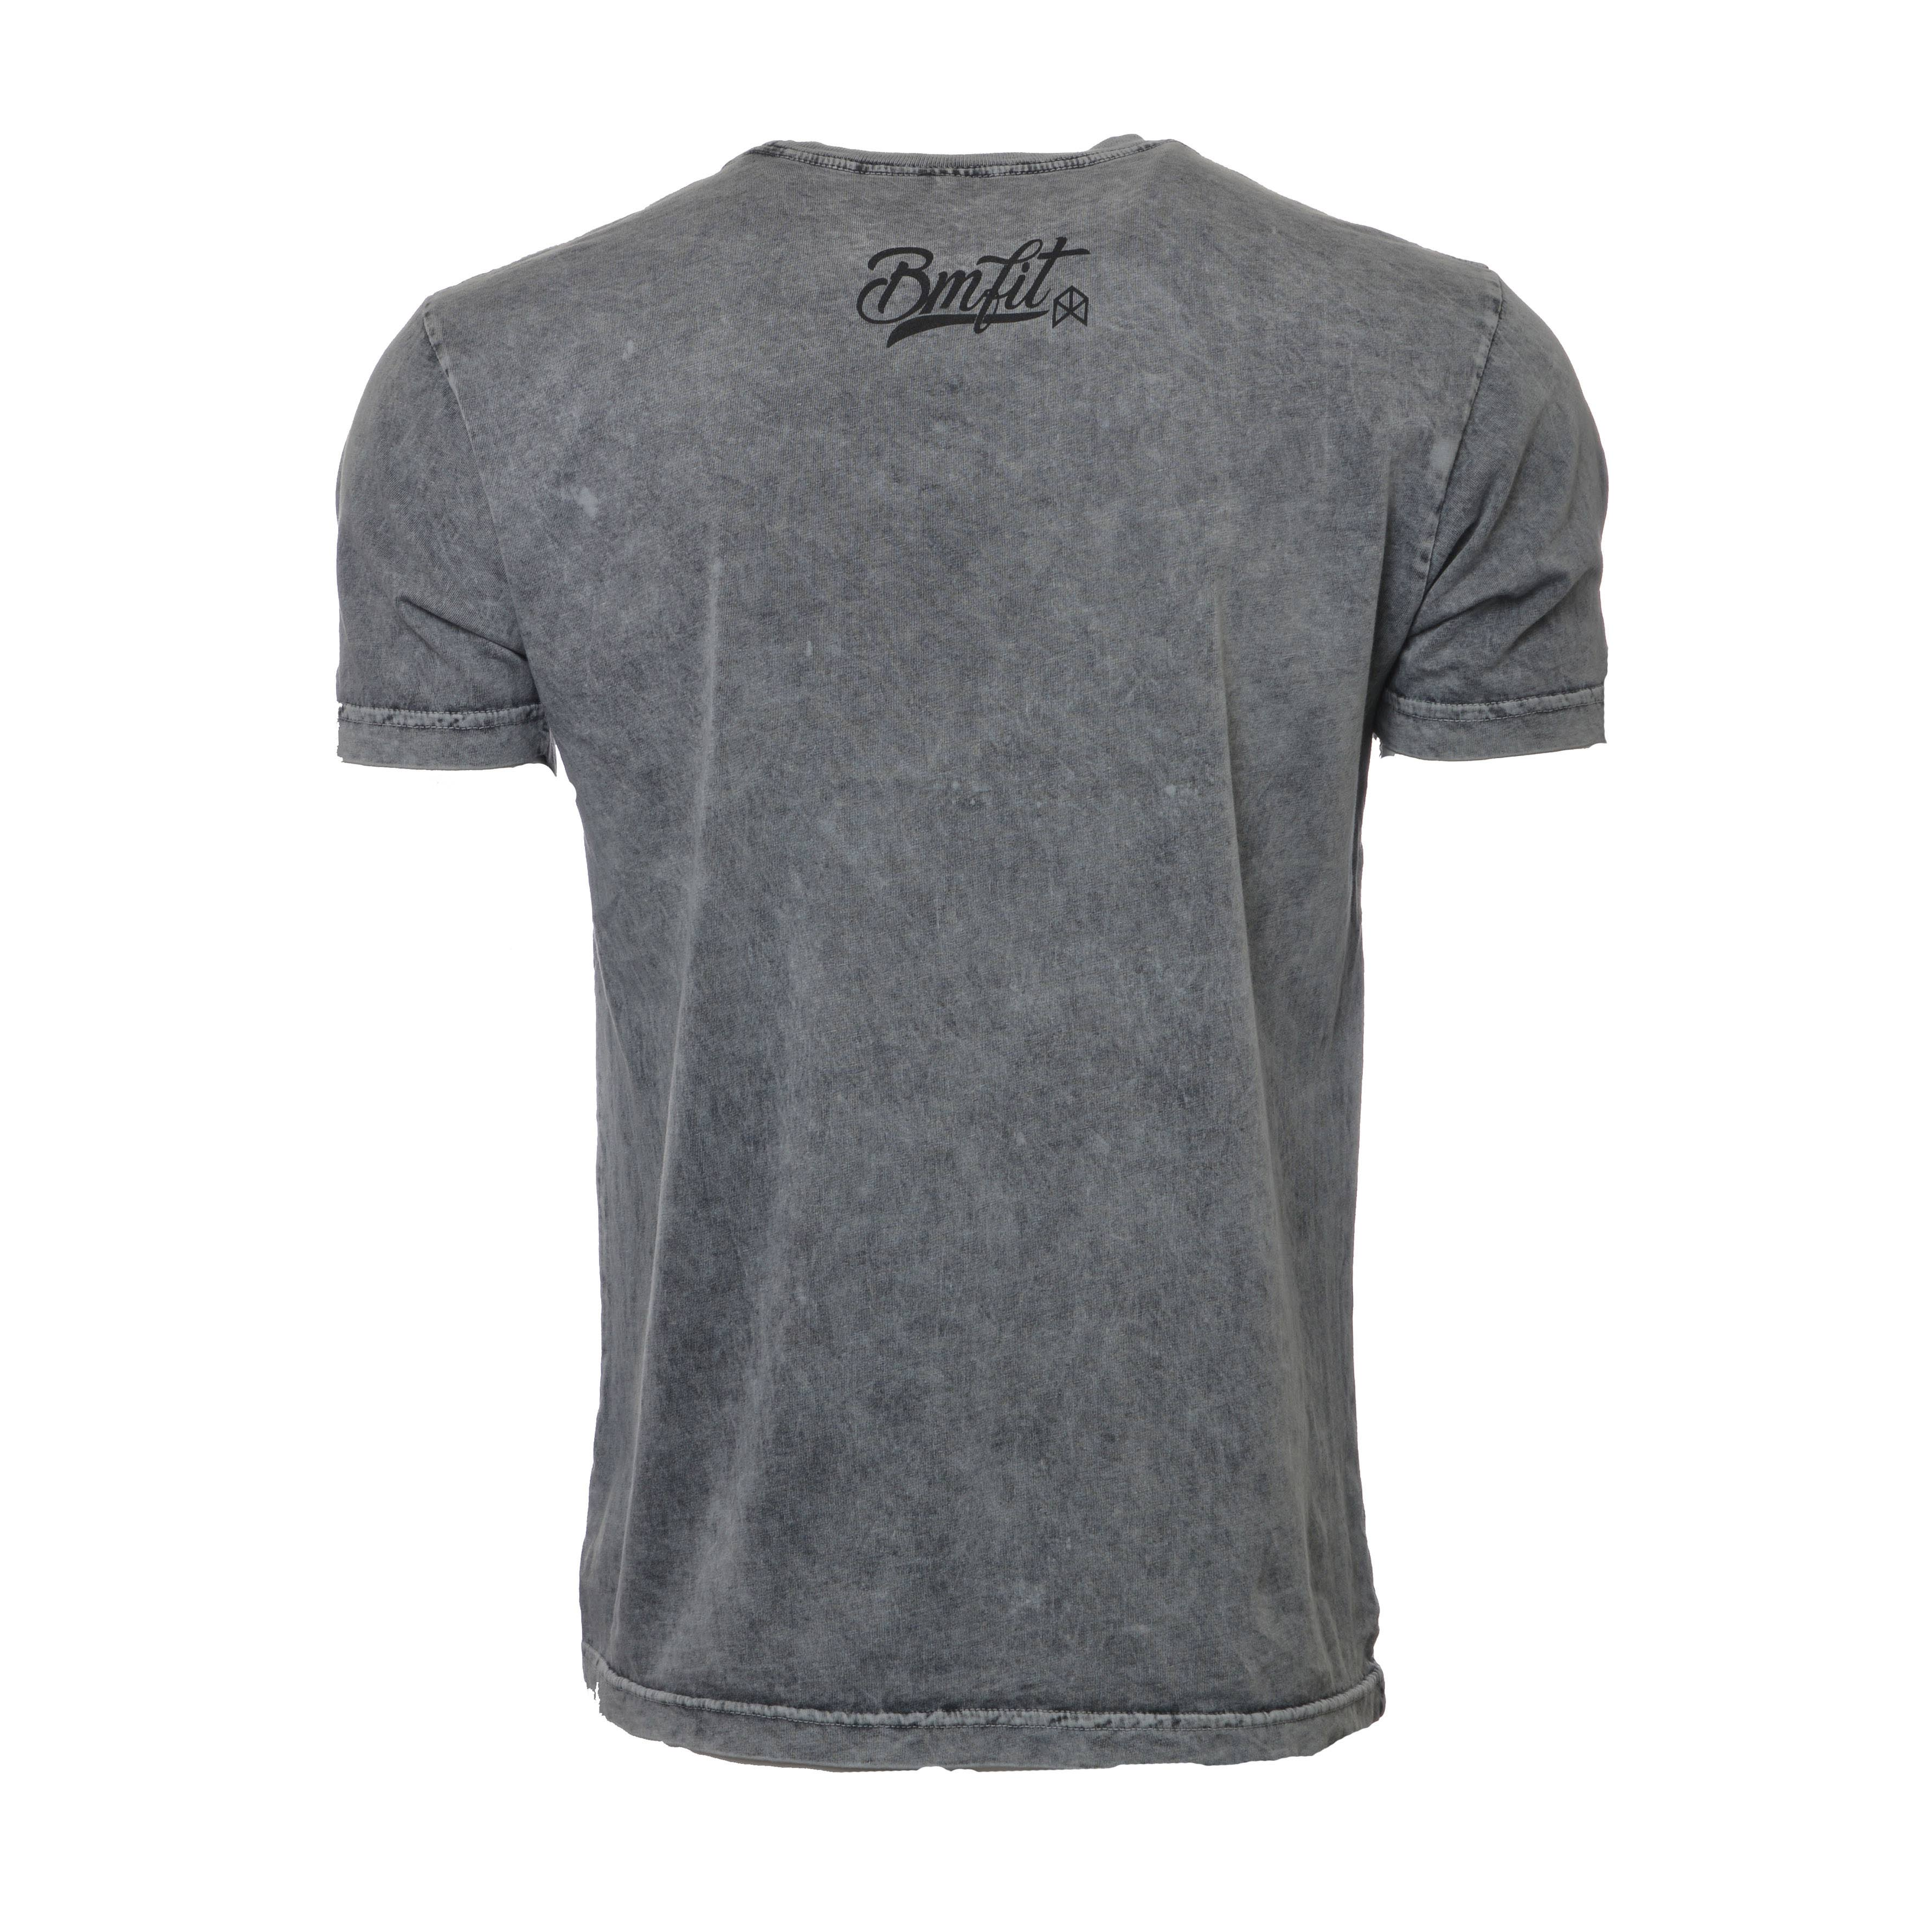 BMFIT Mineral Wash Short Sleeve - Gray